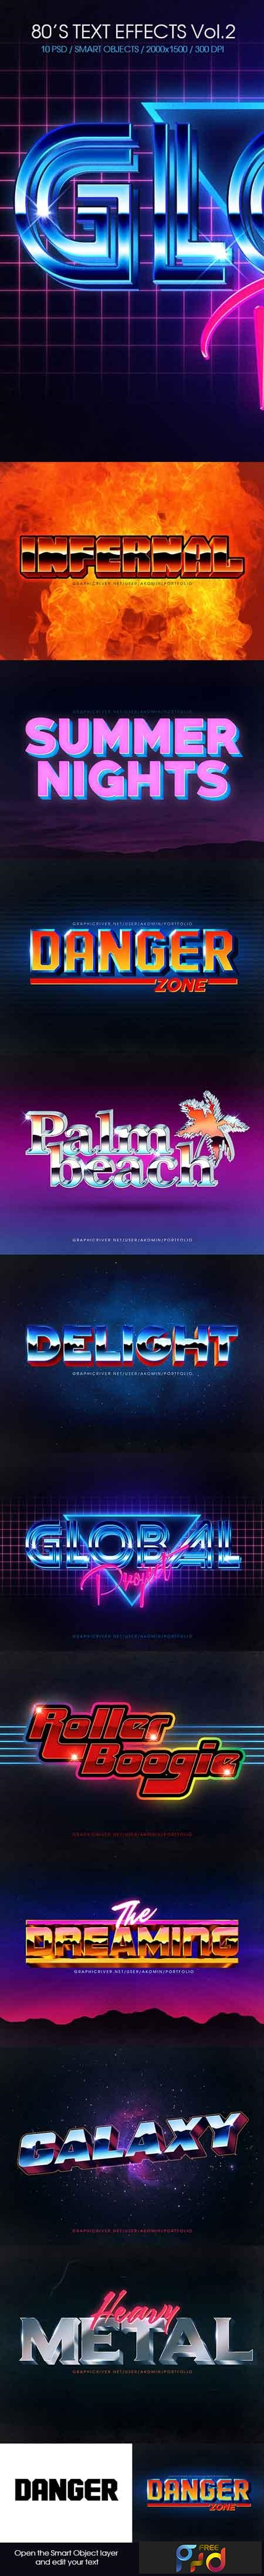 80s Text Effects Vol 2 22668969 - FreePSDvn